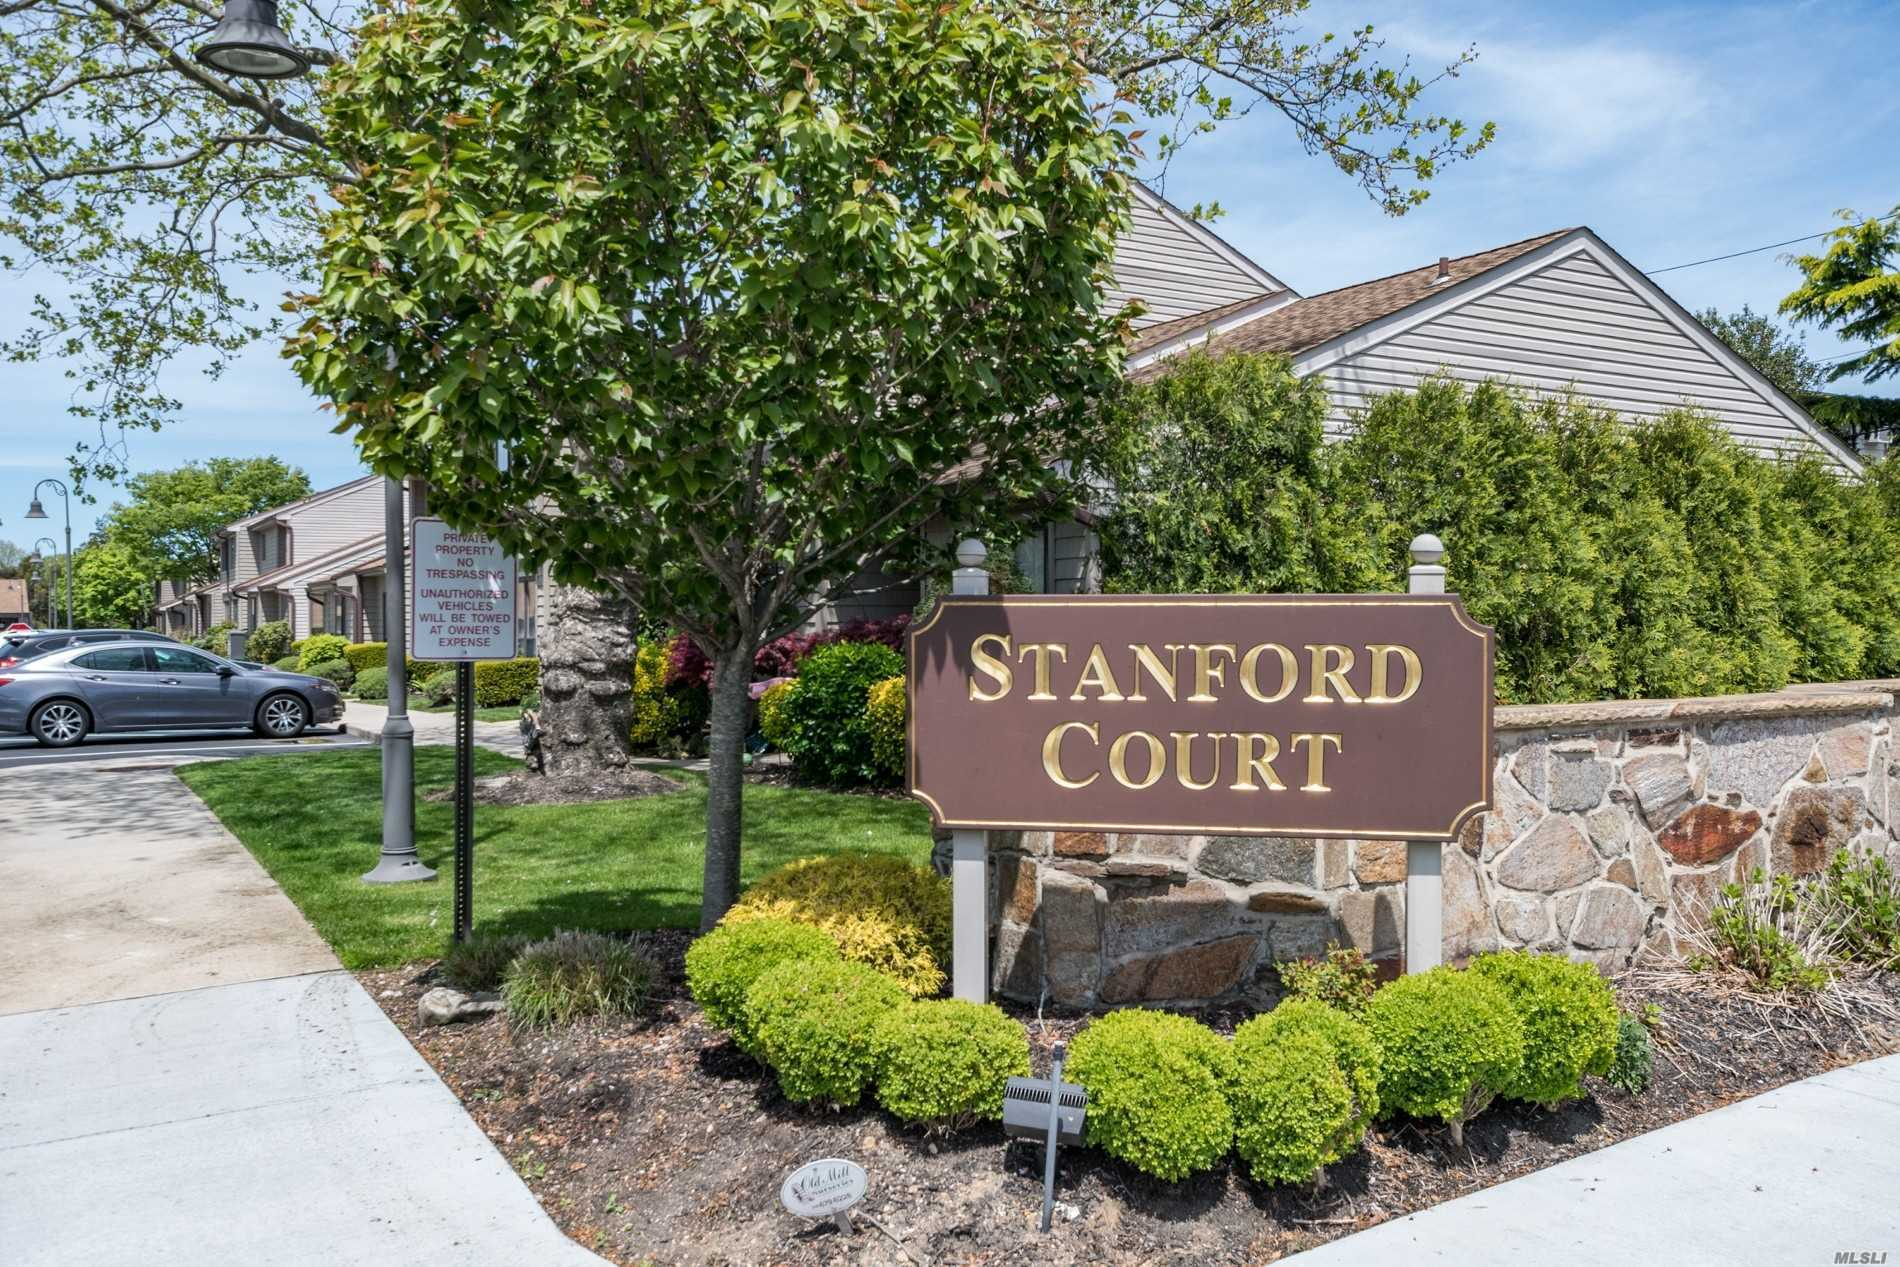 Property for sale at 78 Stanford Ct, Wantagh,  New York 11793